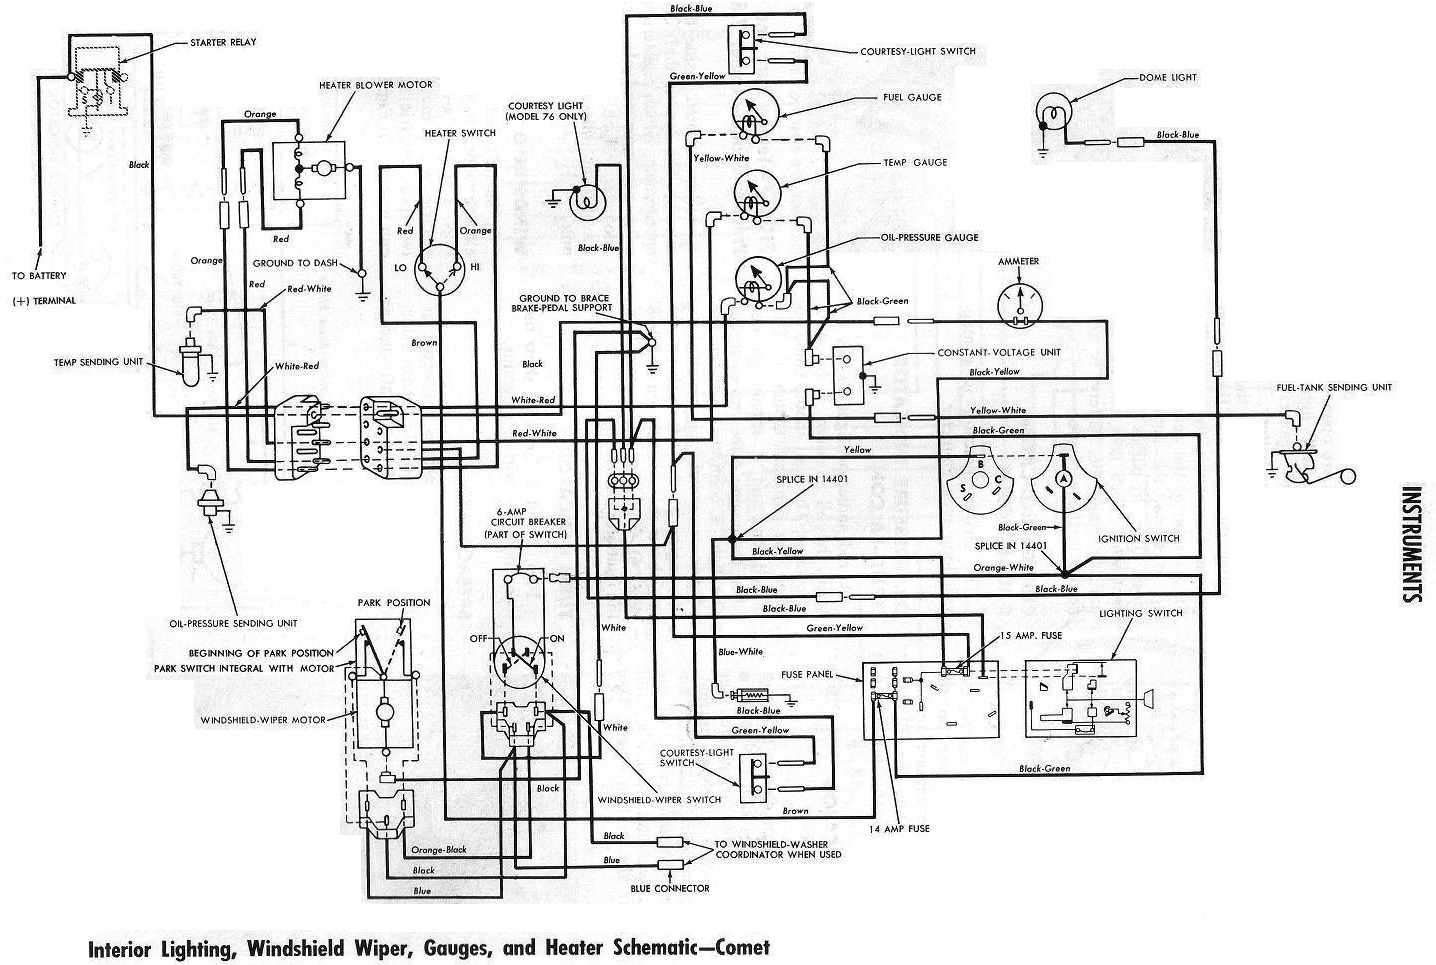 65 comet wiring diagram   23 wiring diagram images